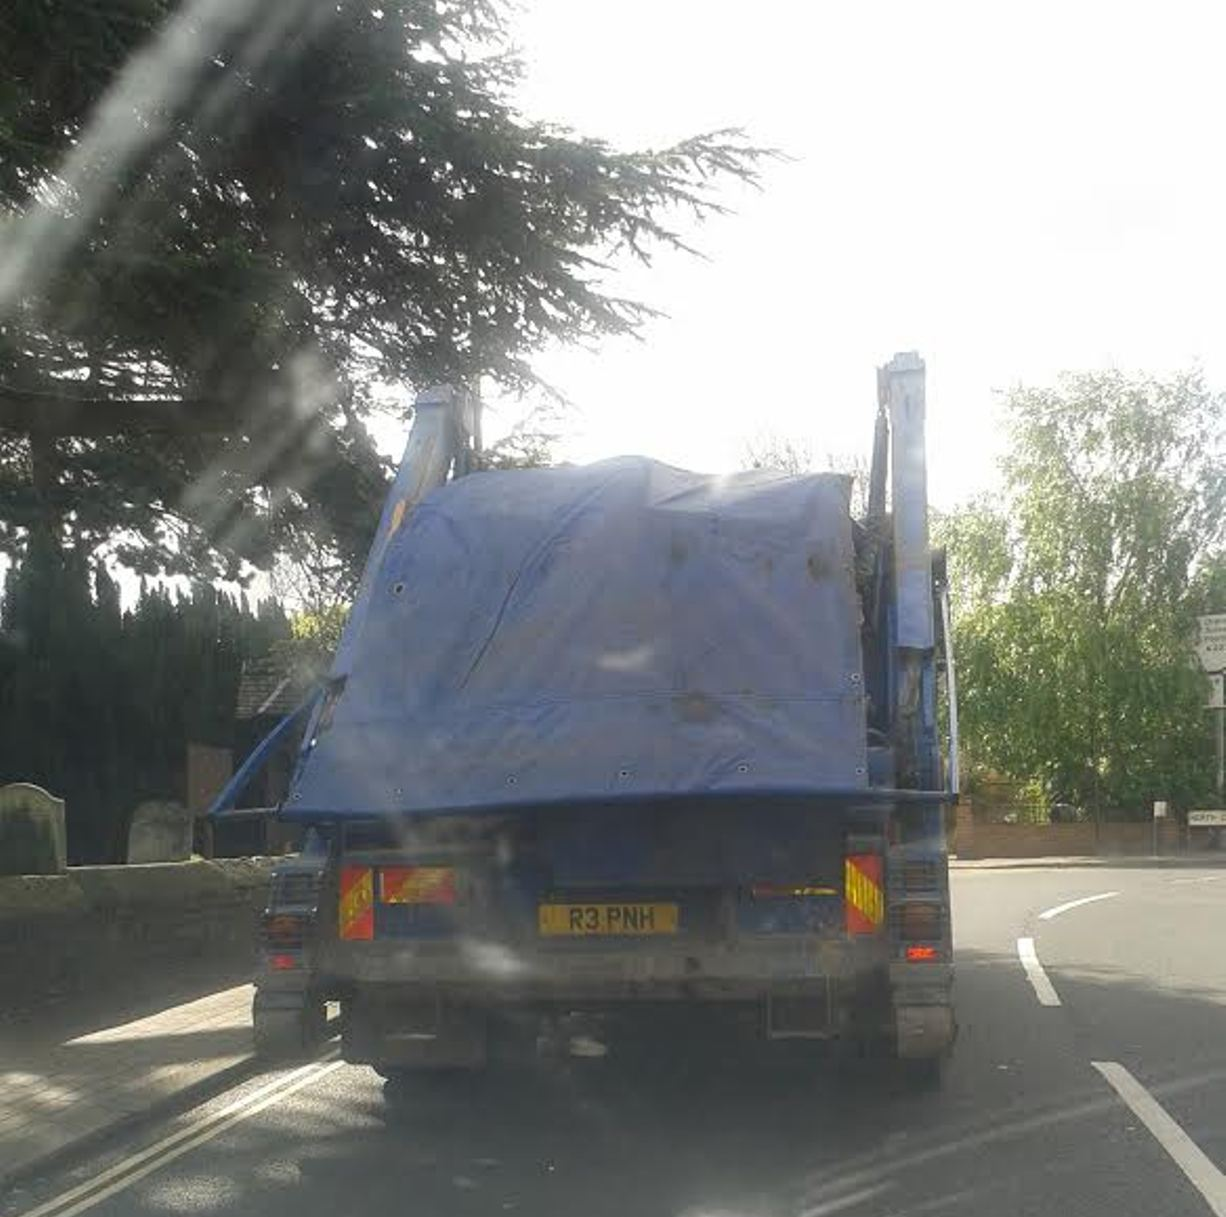 Truck suffers gearbox failure at rush hour in Bexley Village causing delays